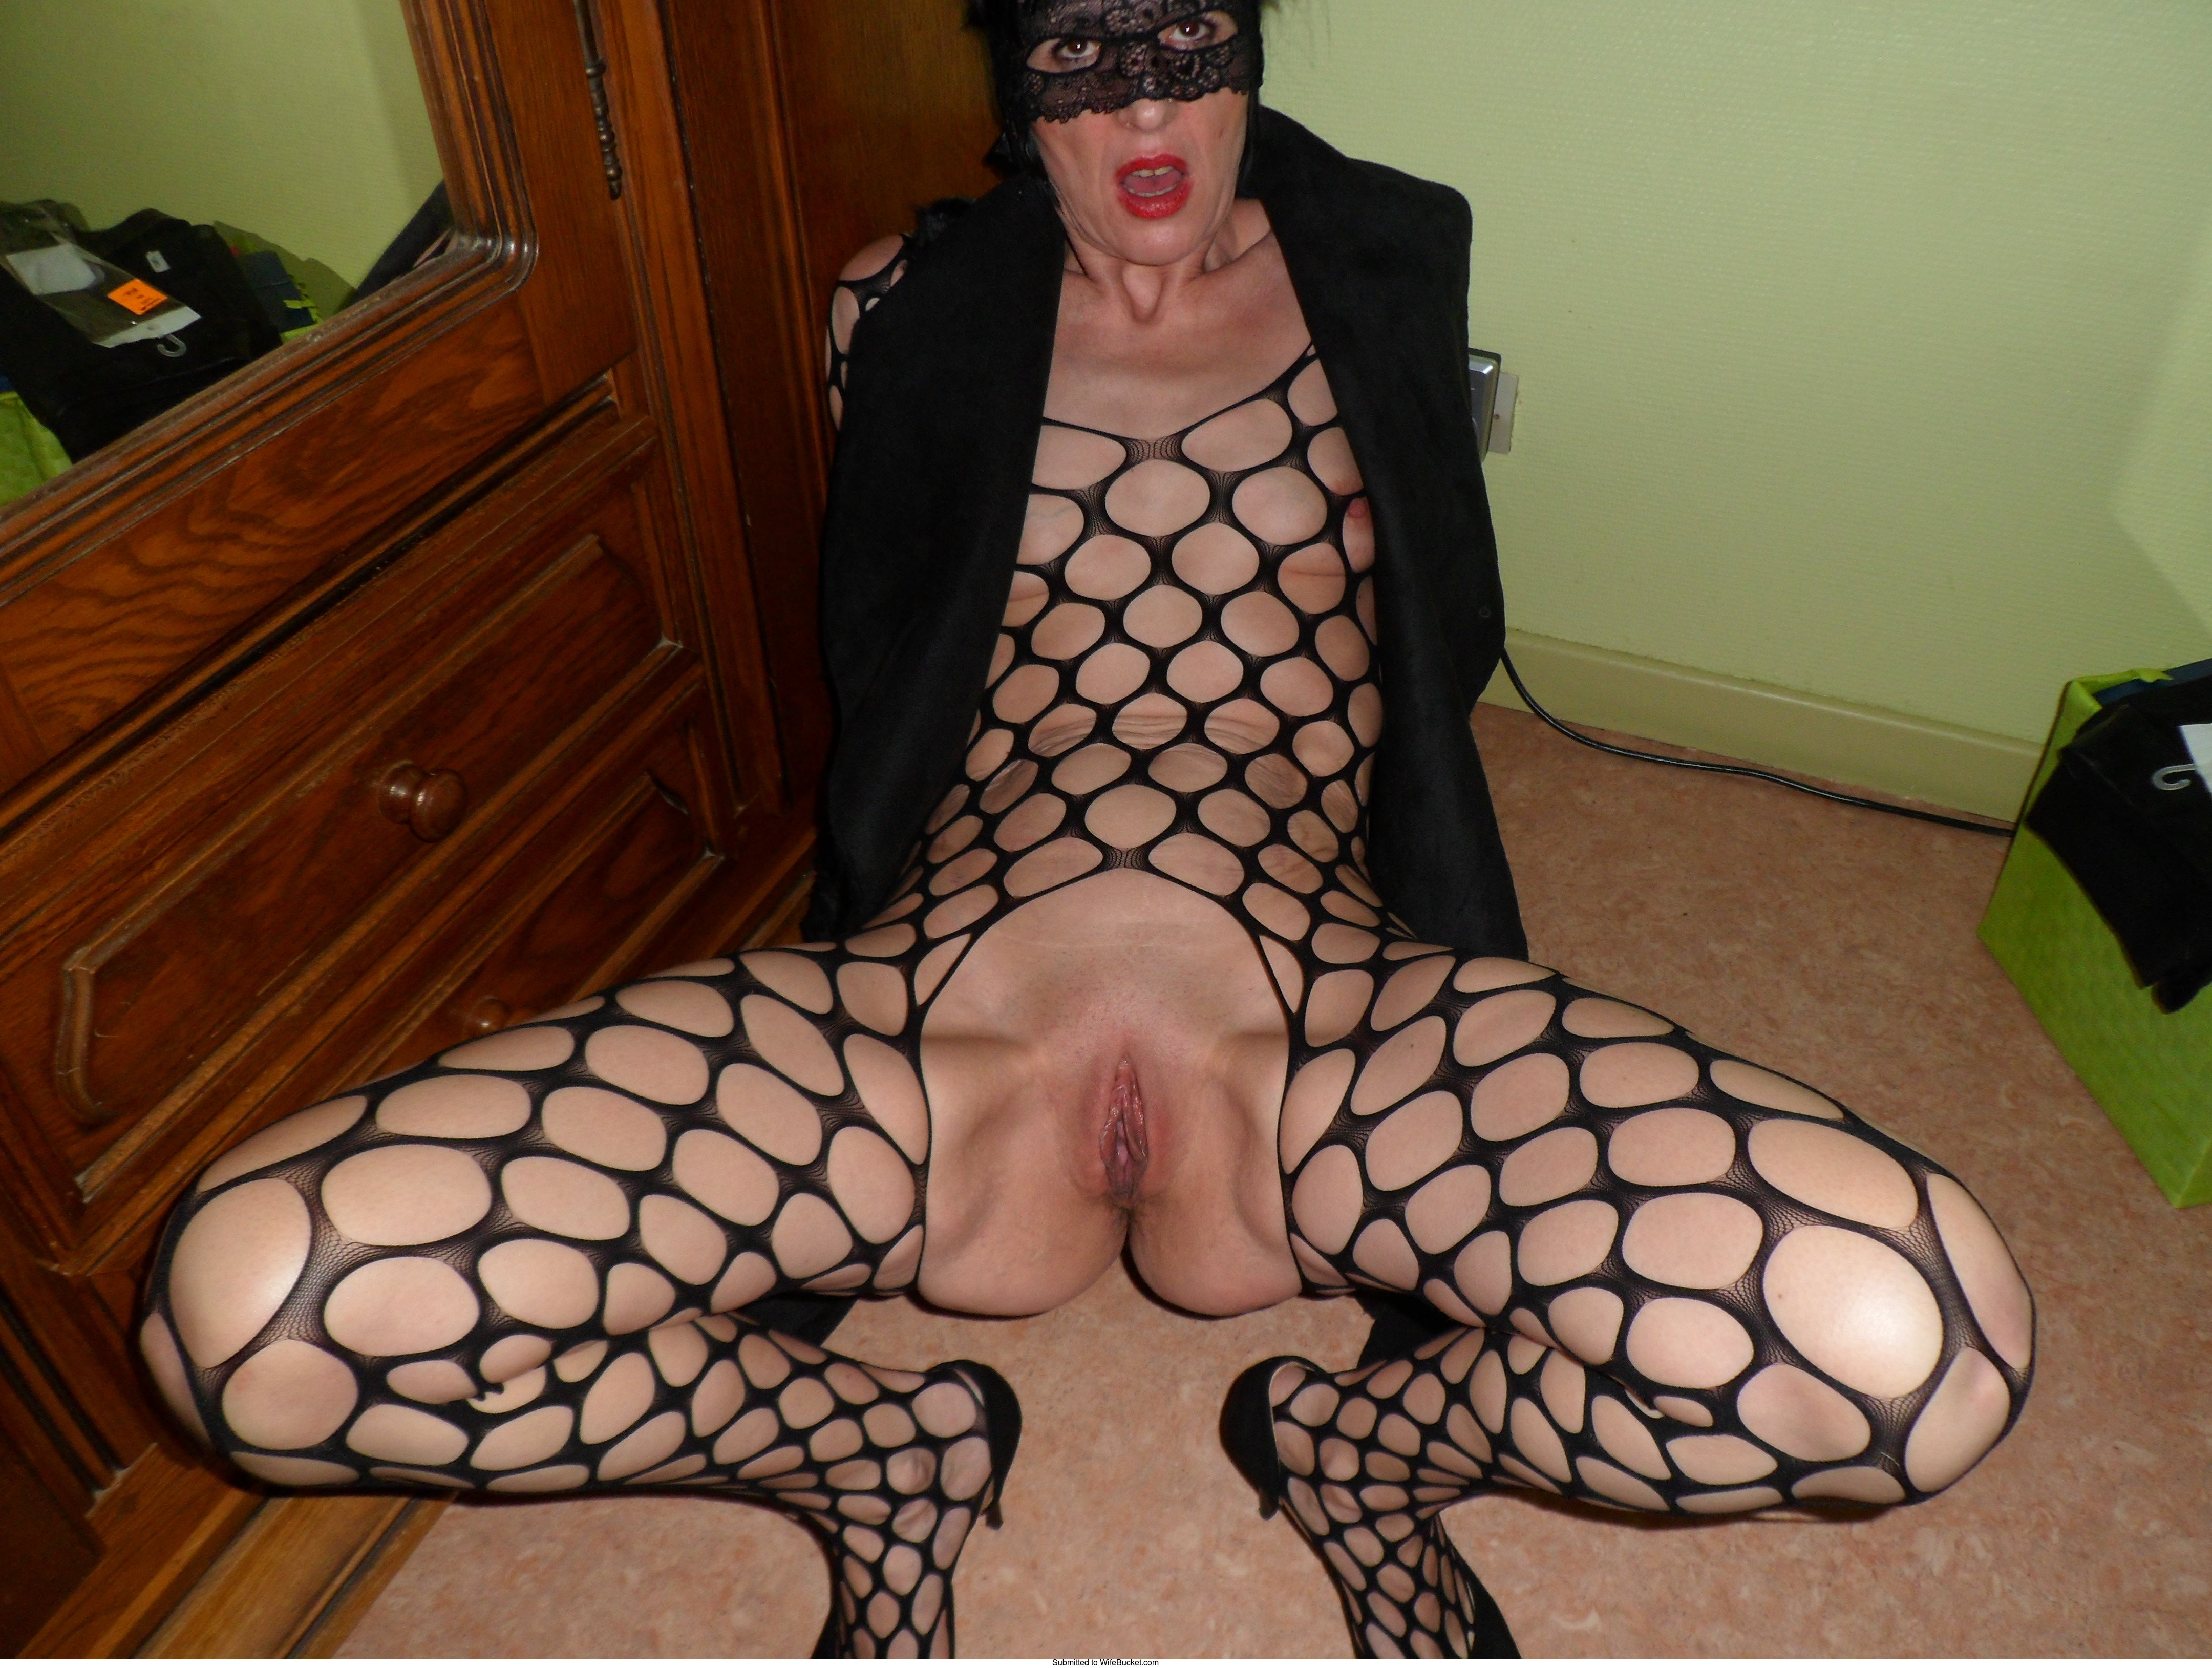 12 Milf Pussy Pictures Uploaded By Members  Wifebucket -6900